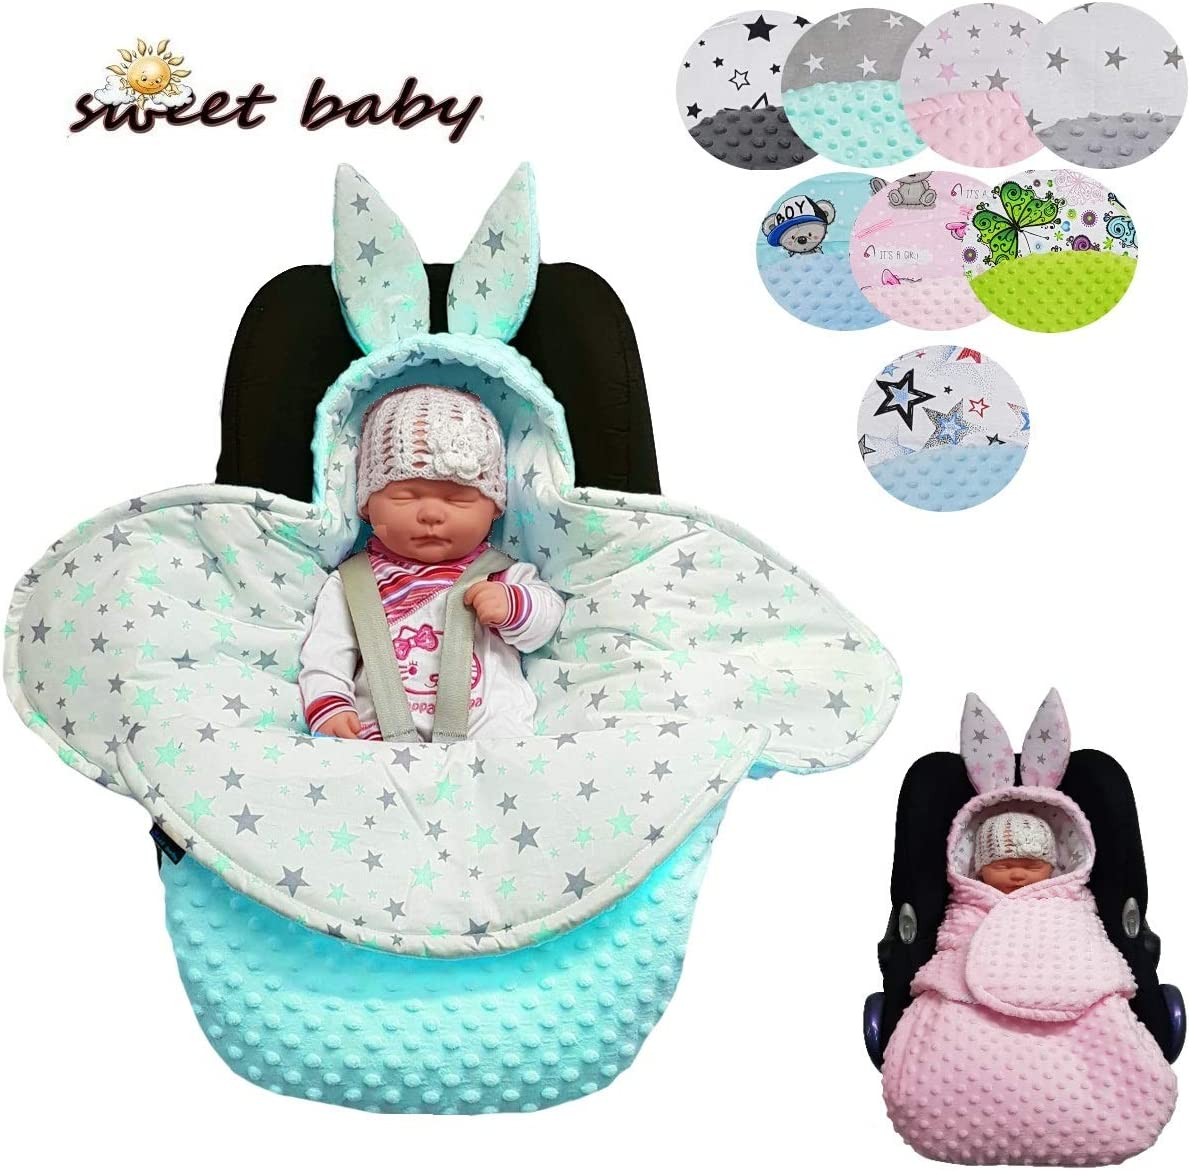 Cot Pushchair etc. Car Seat Sweet Baby Minky Bunny Swaddling Blanket Universal for Maxi COSI Baby Seat